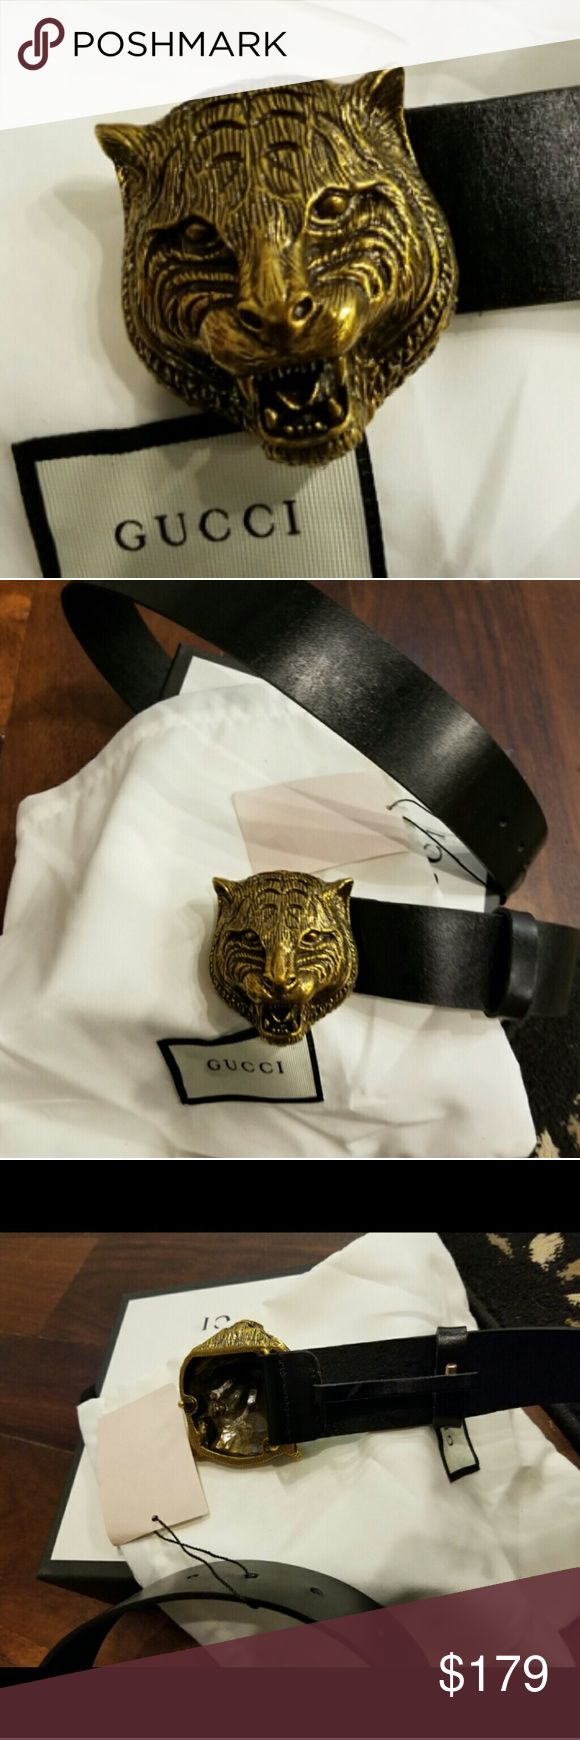 ❤Authentic Gucci Belt Black Leather Tiger Head ❤Brand New Gucci Belt Black Leather with Brass Tiger Head Buckle. Nice! Comes with tags, box and dust bag. Easy sizing done for you below. Fast 24hr Shipping! Gucci Accessories Belts